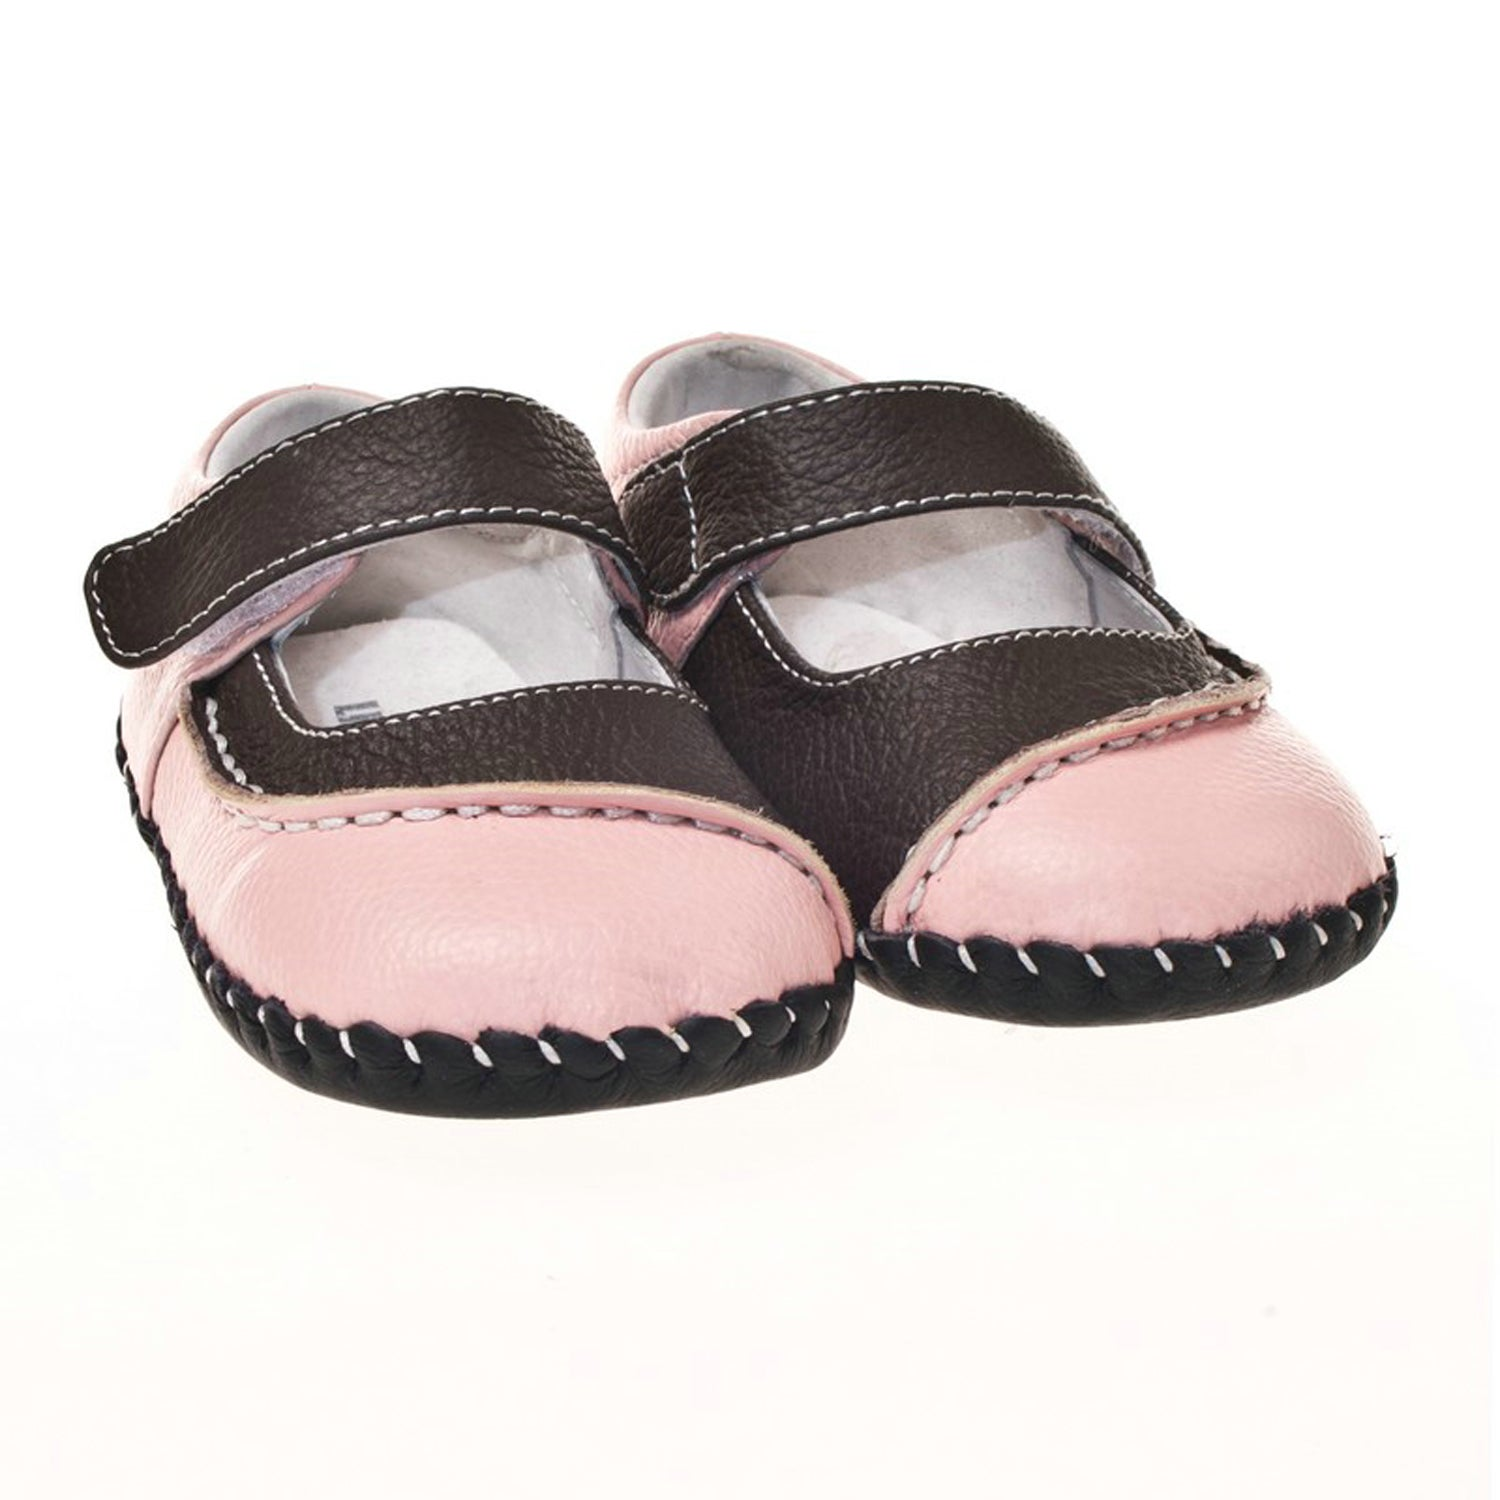 Little Blue Lamb Infant/ Toddler Hand-stitched Pink Leather Walking Shoes